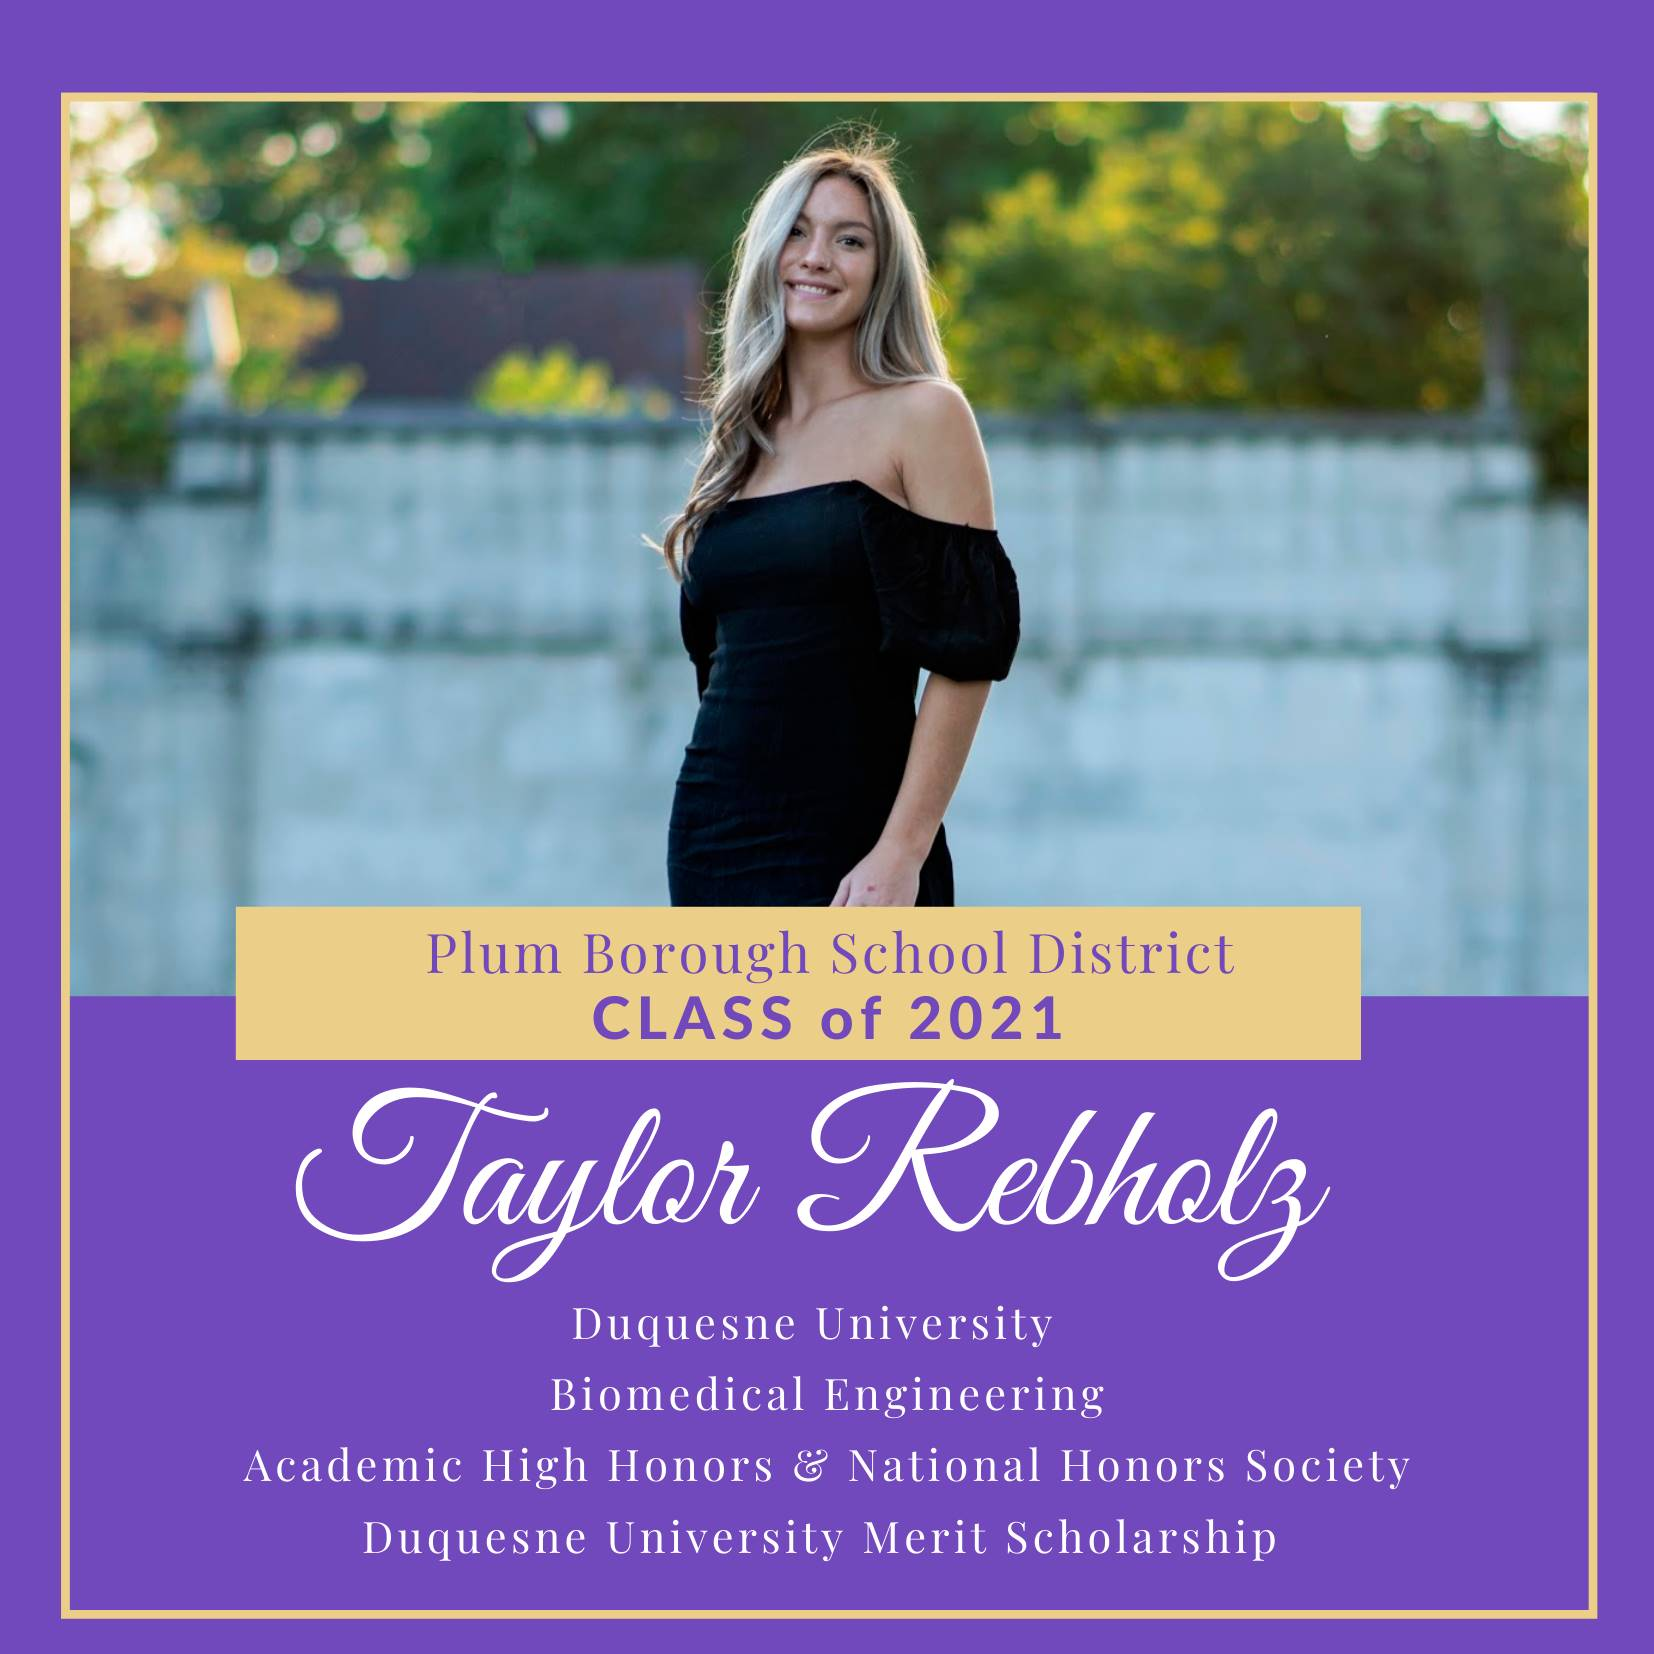 Congratulations to Taylor Rebholz, Class of 2021!